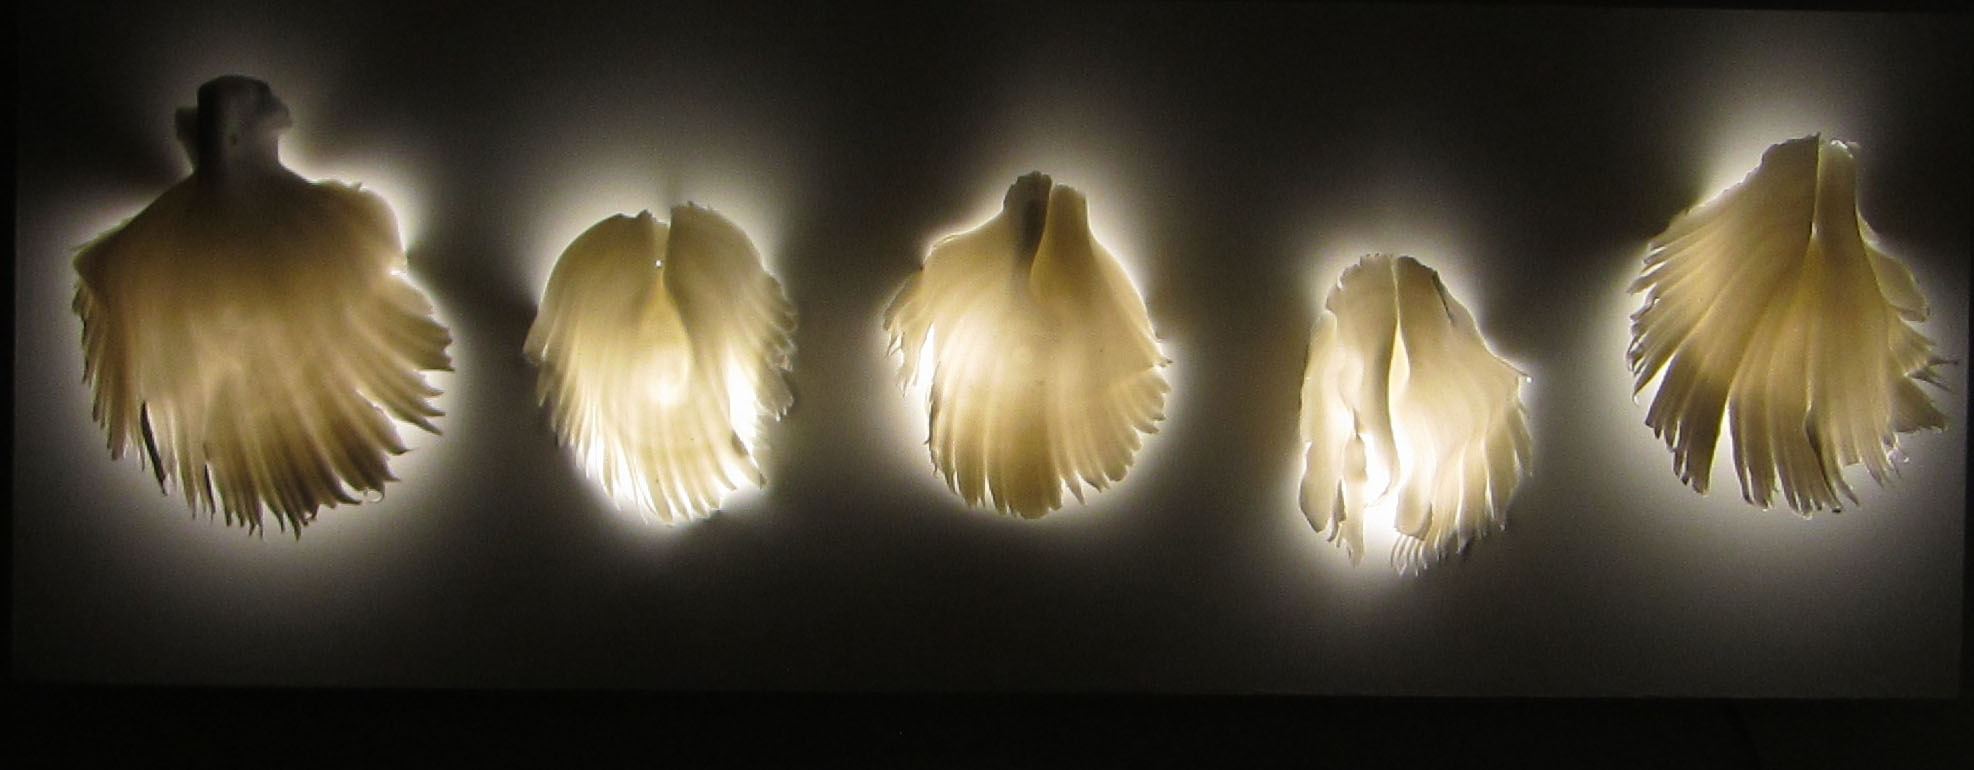 4. Angel wings installation.